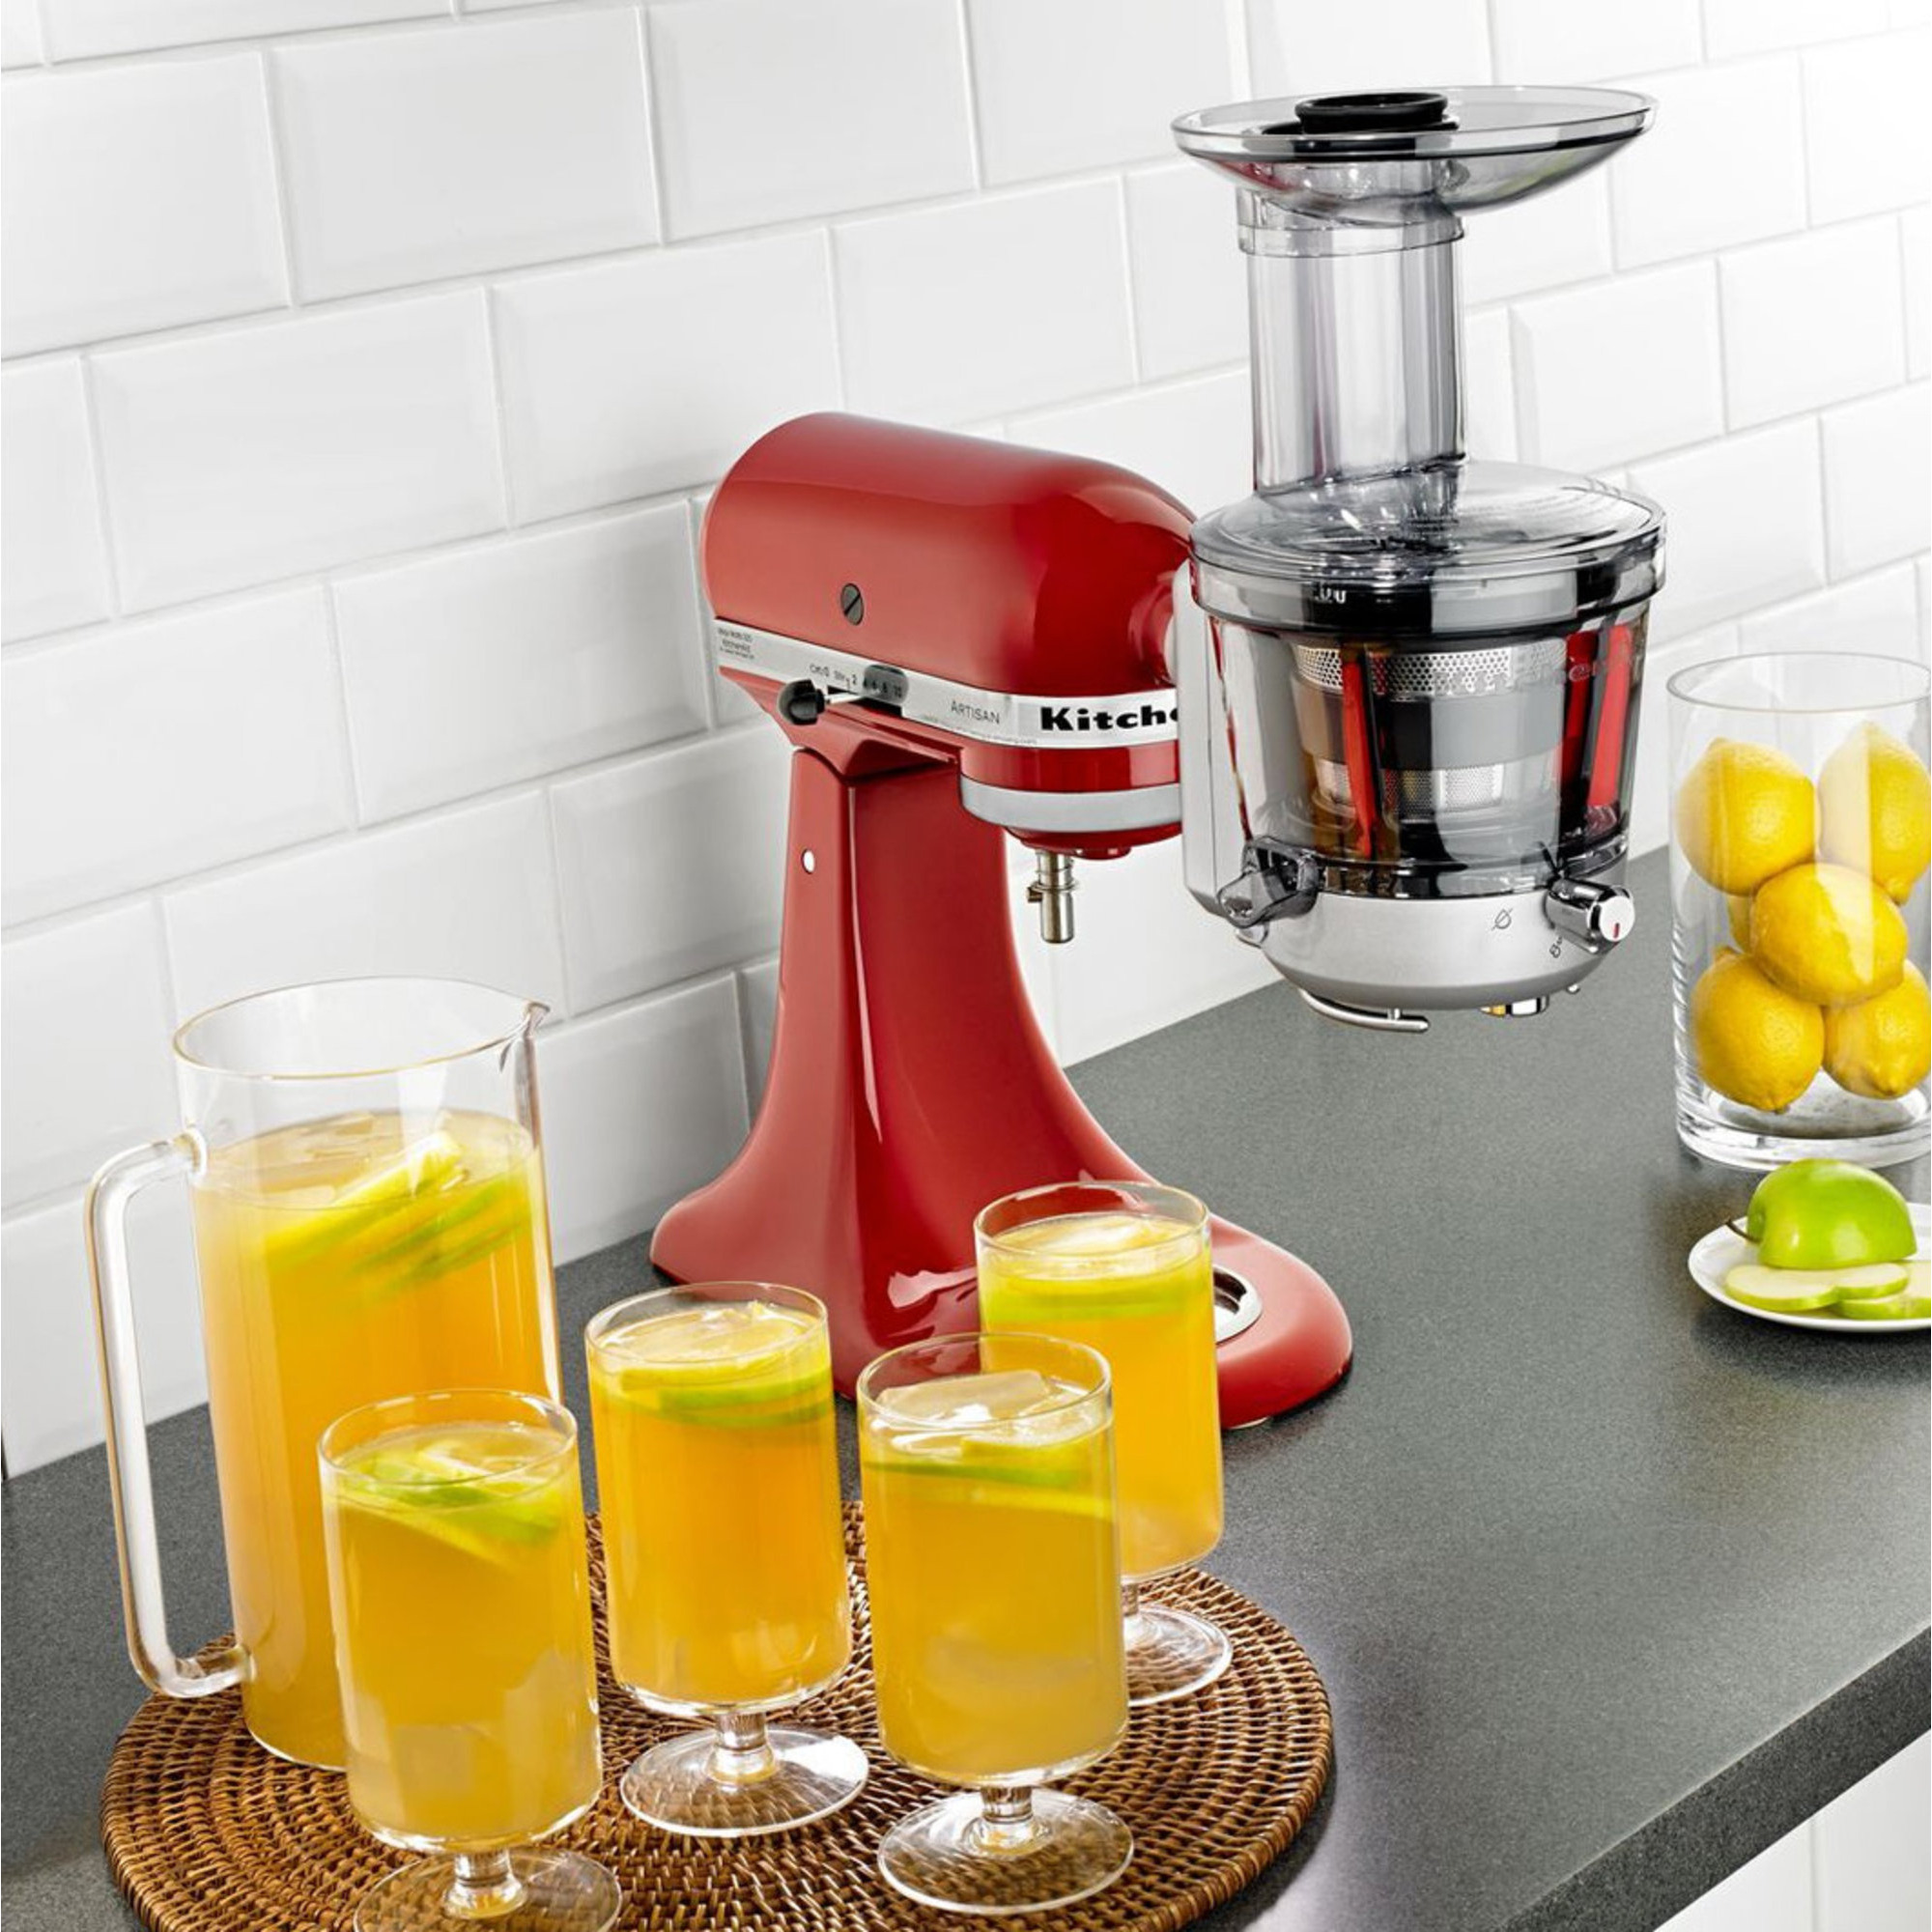 Kitchenaid Slow Juicer Rezepte : SM1JA Slow Juicer fra KitchenAid Slow Juicer tilbehor til KitchenAid